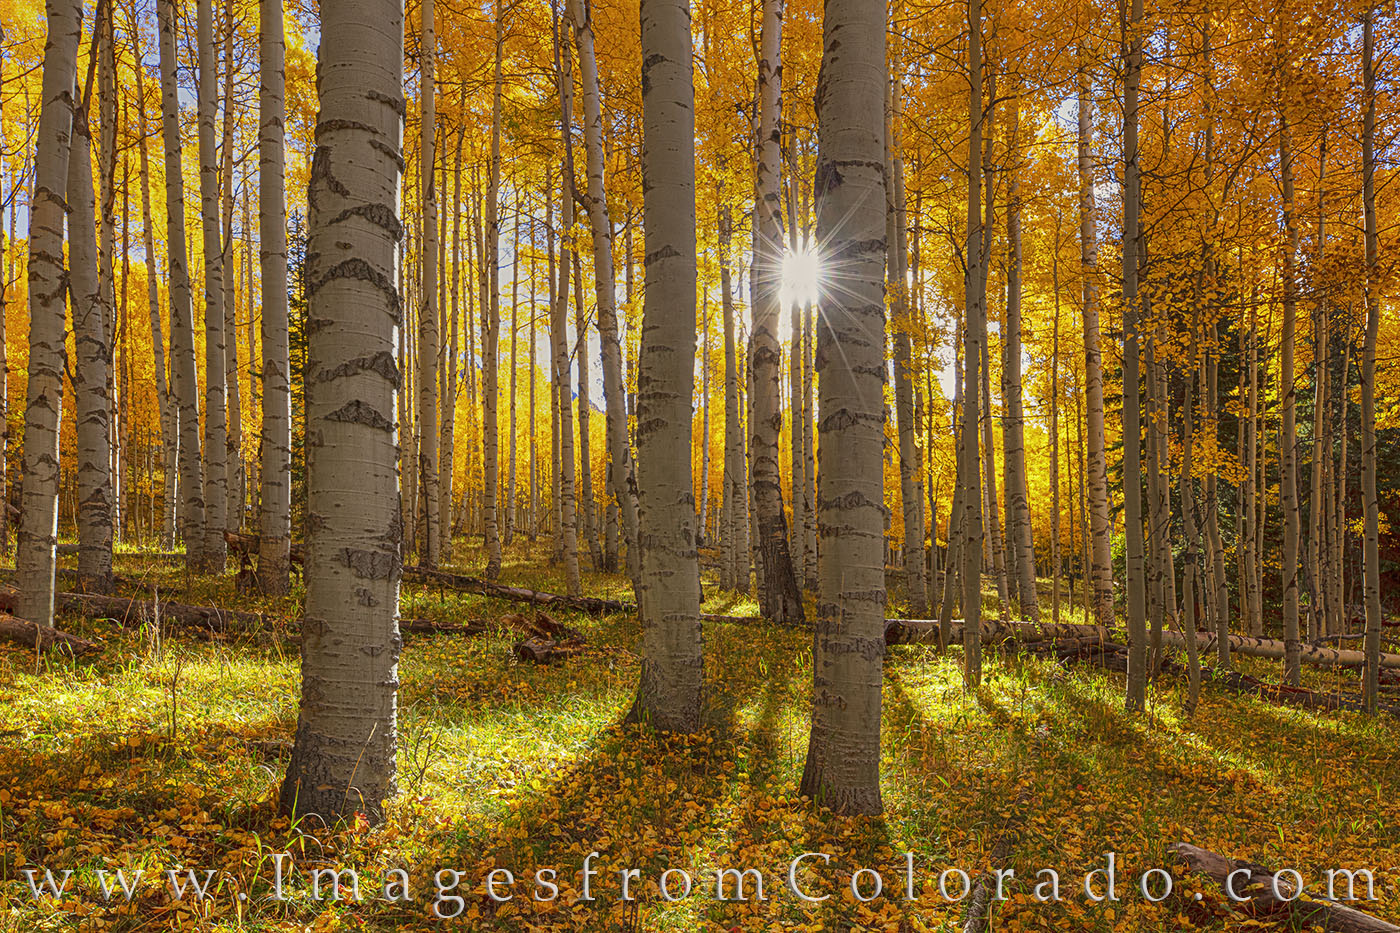 aspen, orange, sunlight, sunburst, san juans, autumn, fall, photo